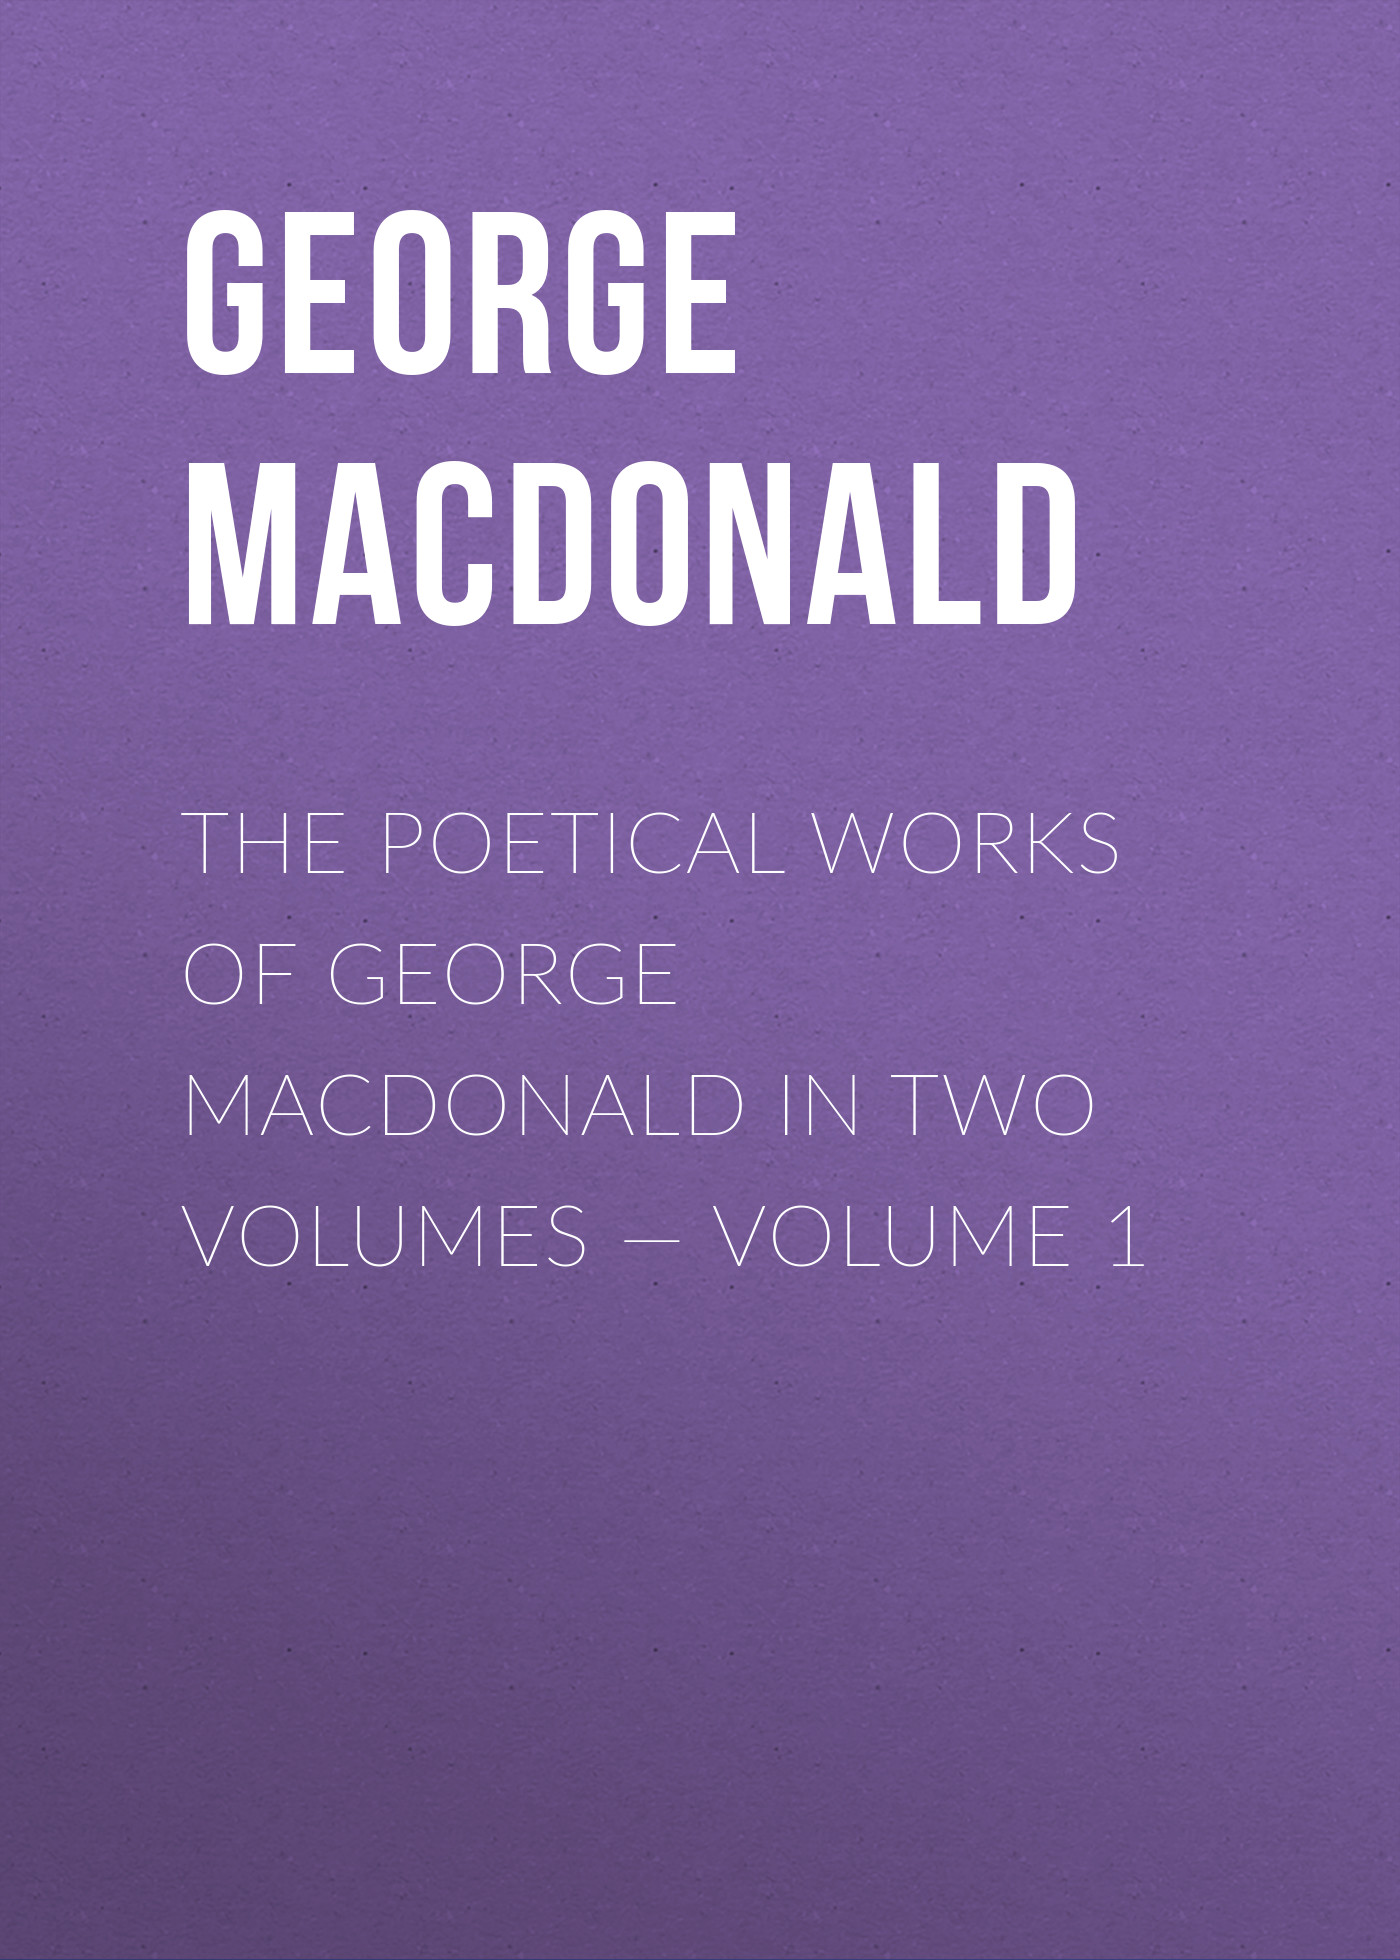 George MacDonald The poetical works of George MacDonald in two volumes — Volume 1 george macdonald home again